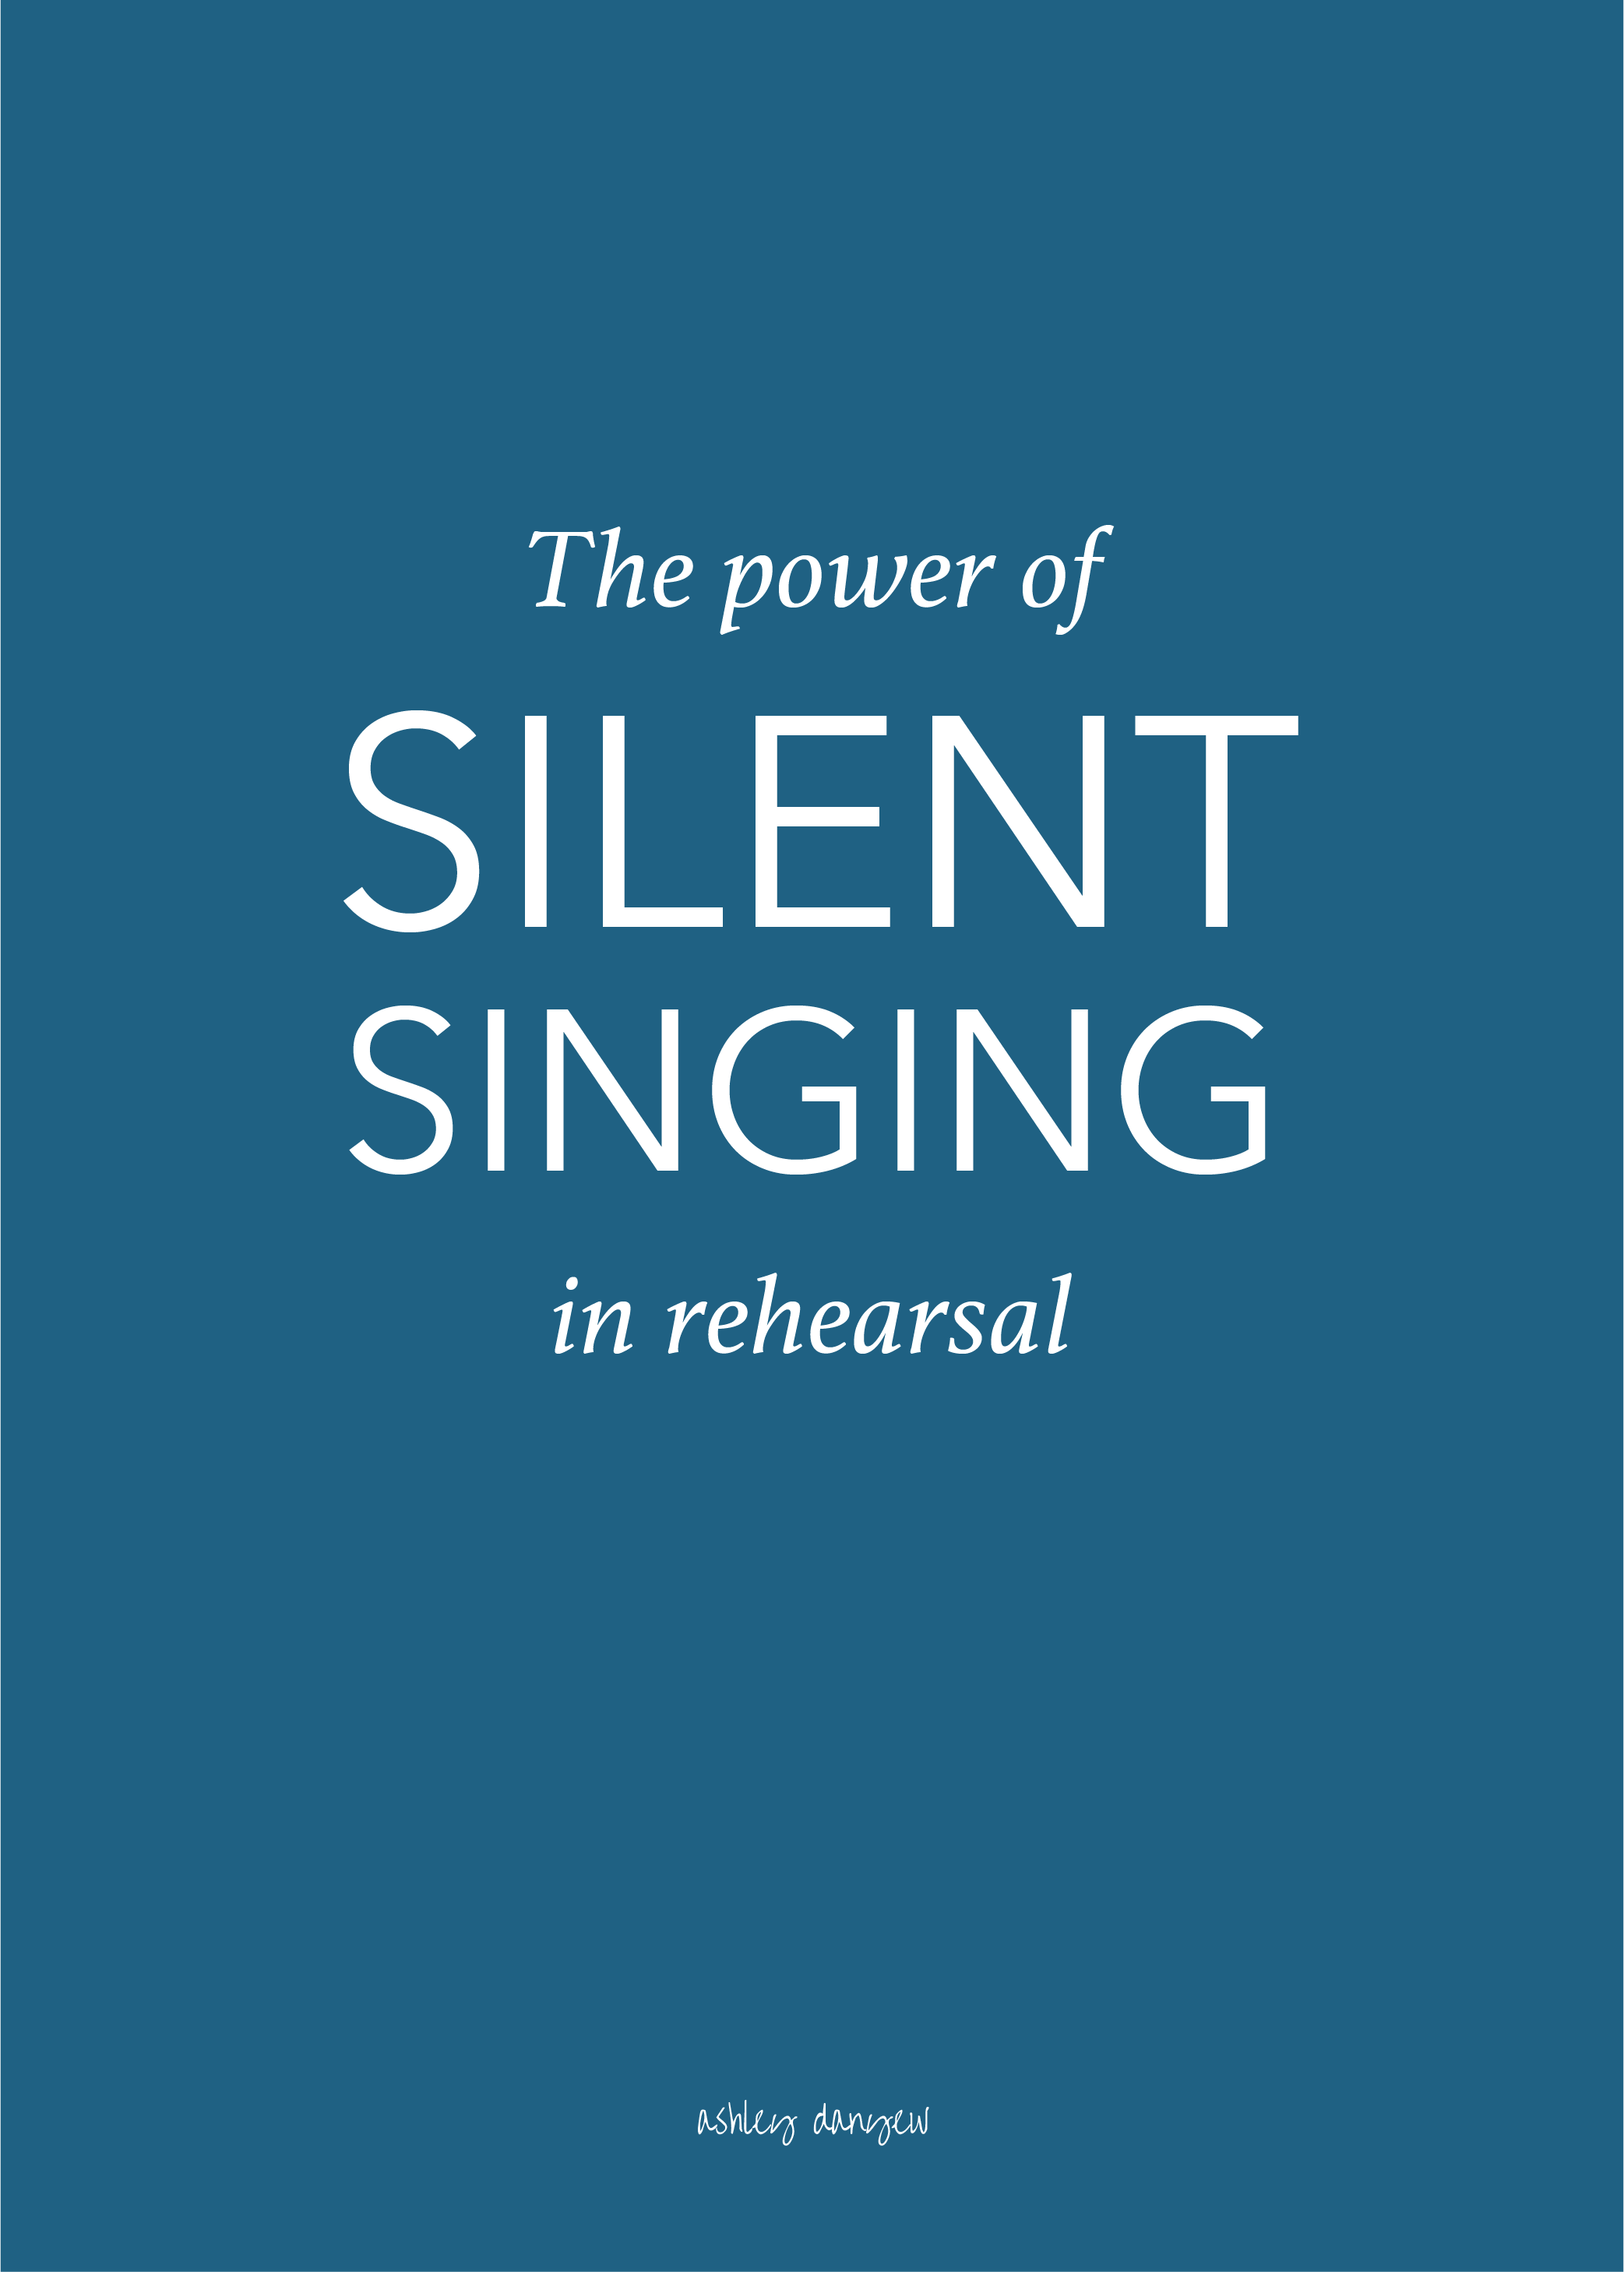 The Power of Silent Singing in Rehearsal.png